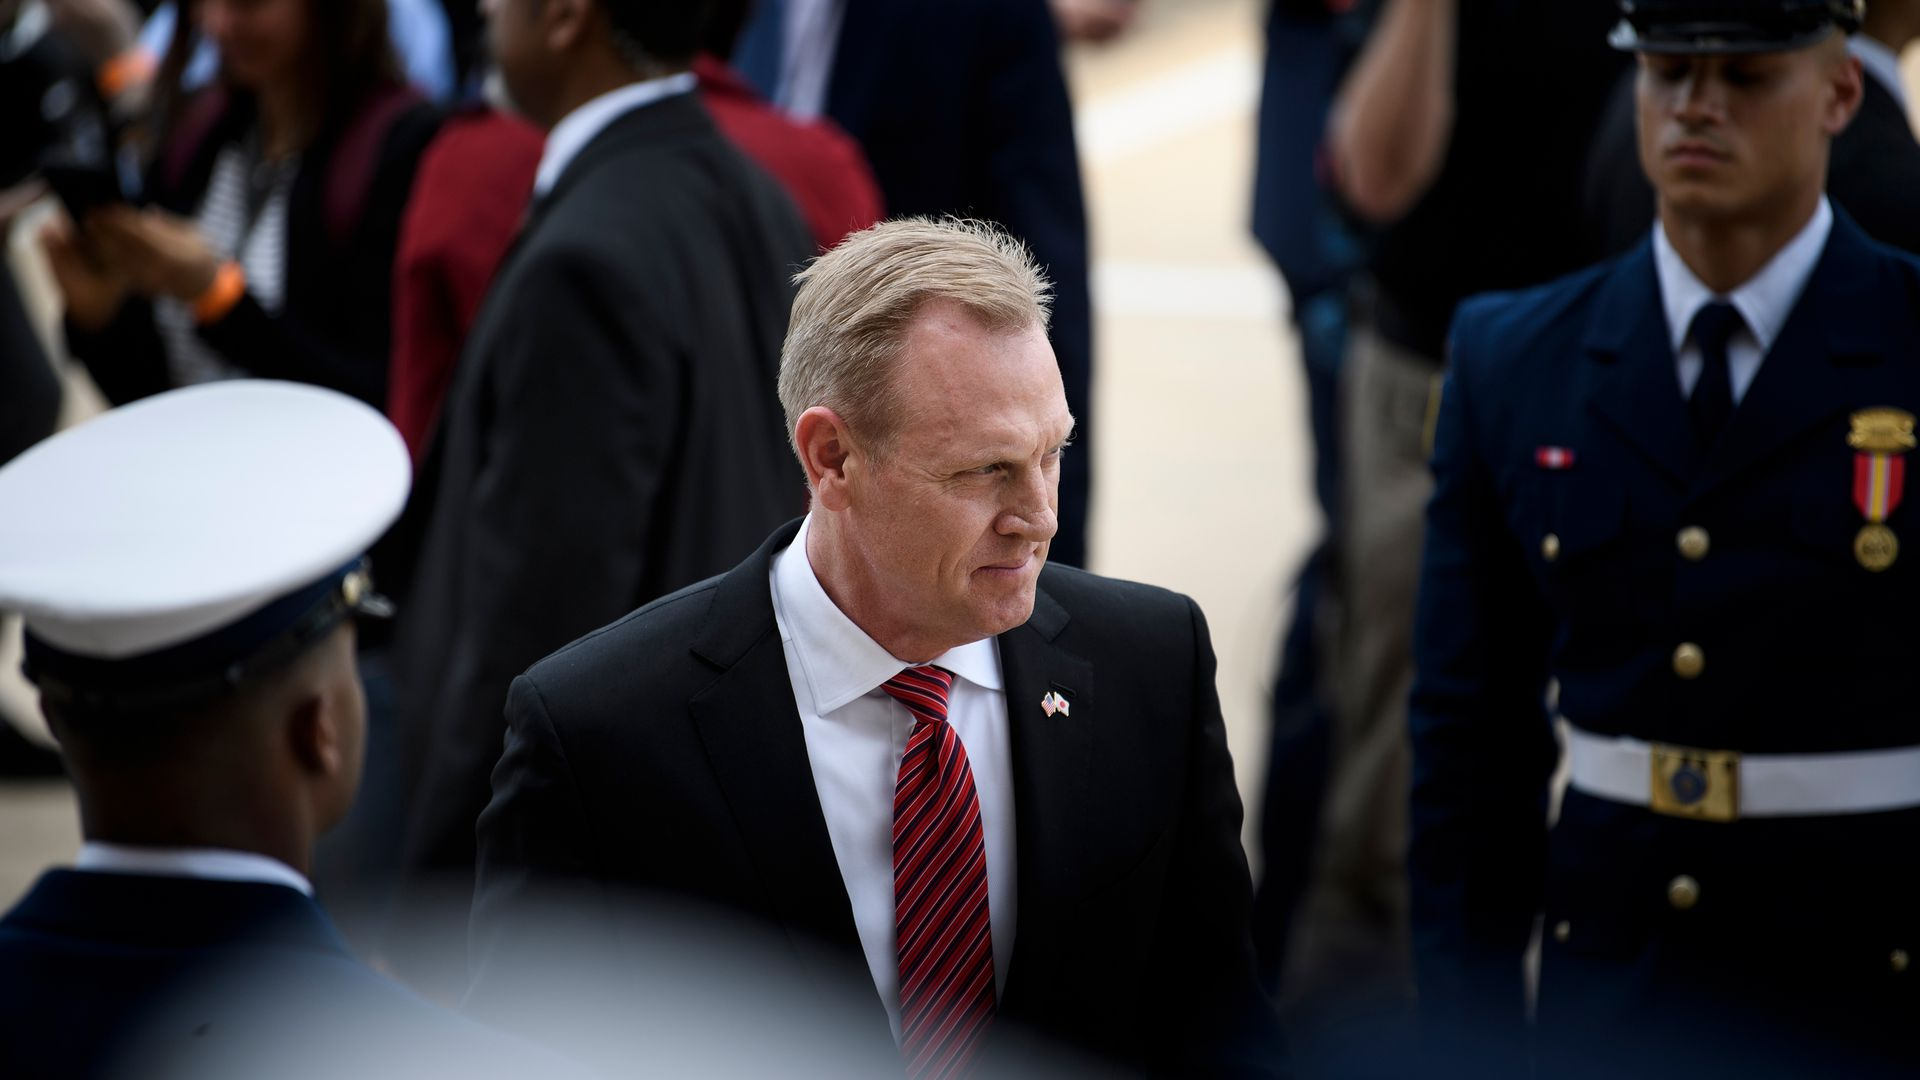 Acting Defense secretary Patrick Shanahan walks past troops in uniform.